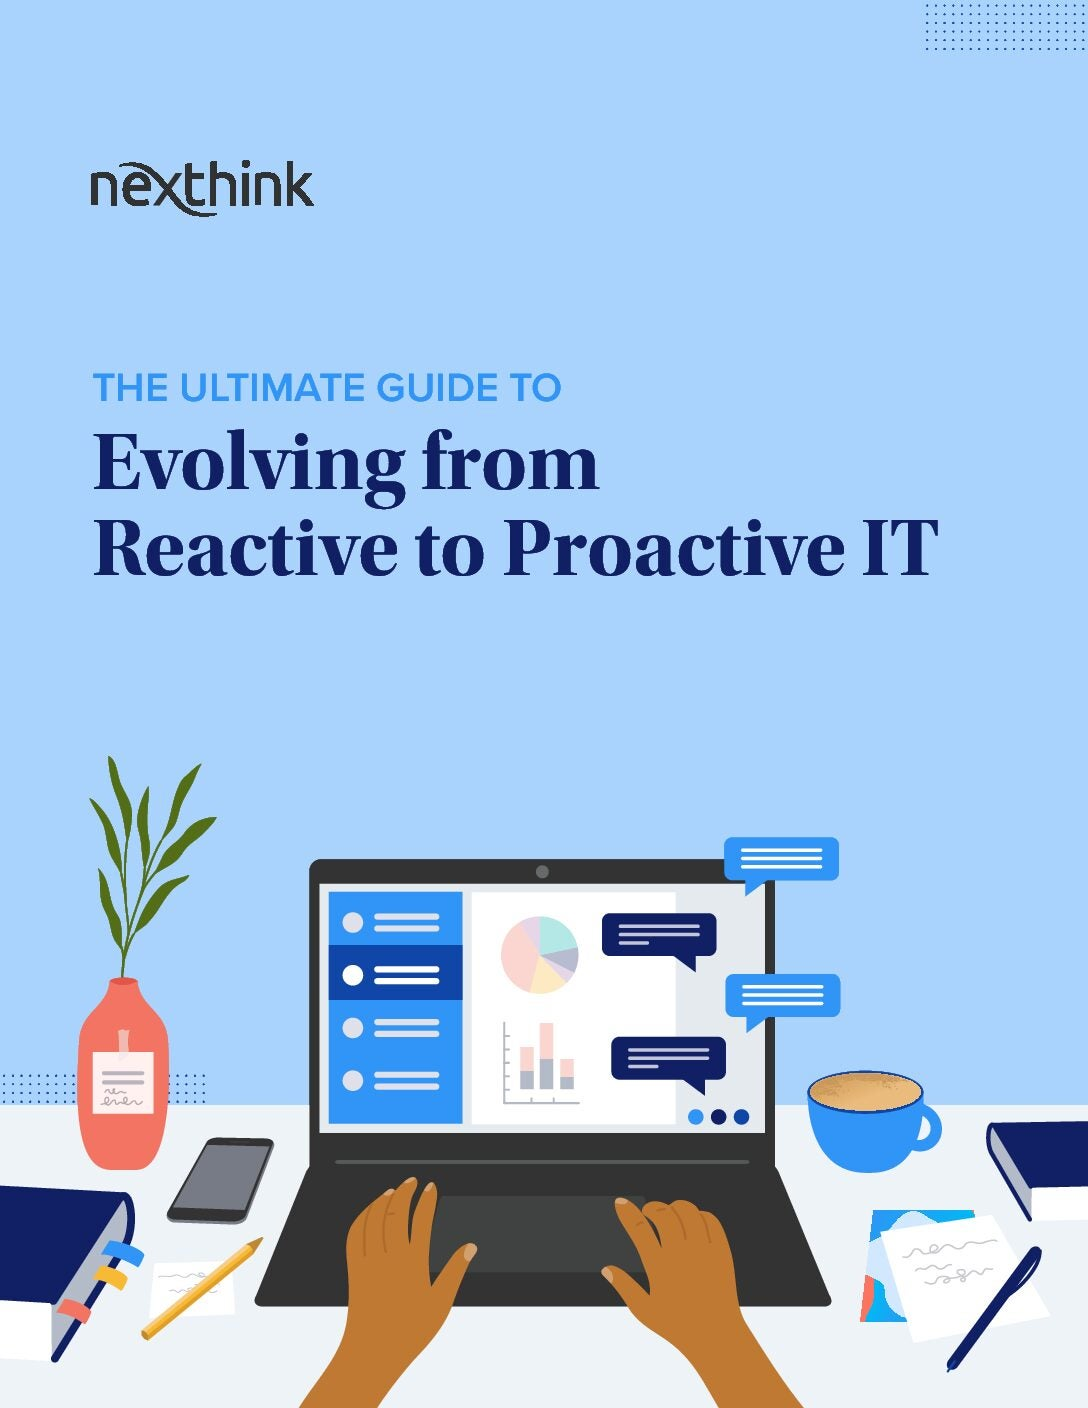 How Do IT Teams Evolve from Reactive to Proactive?